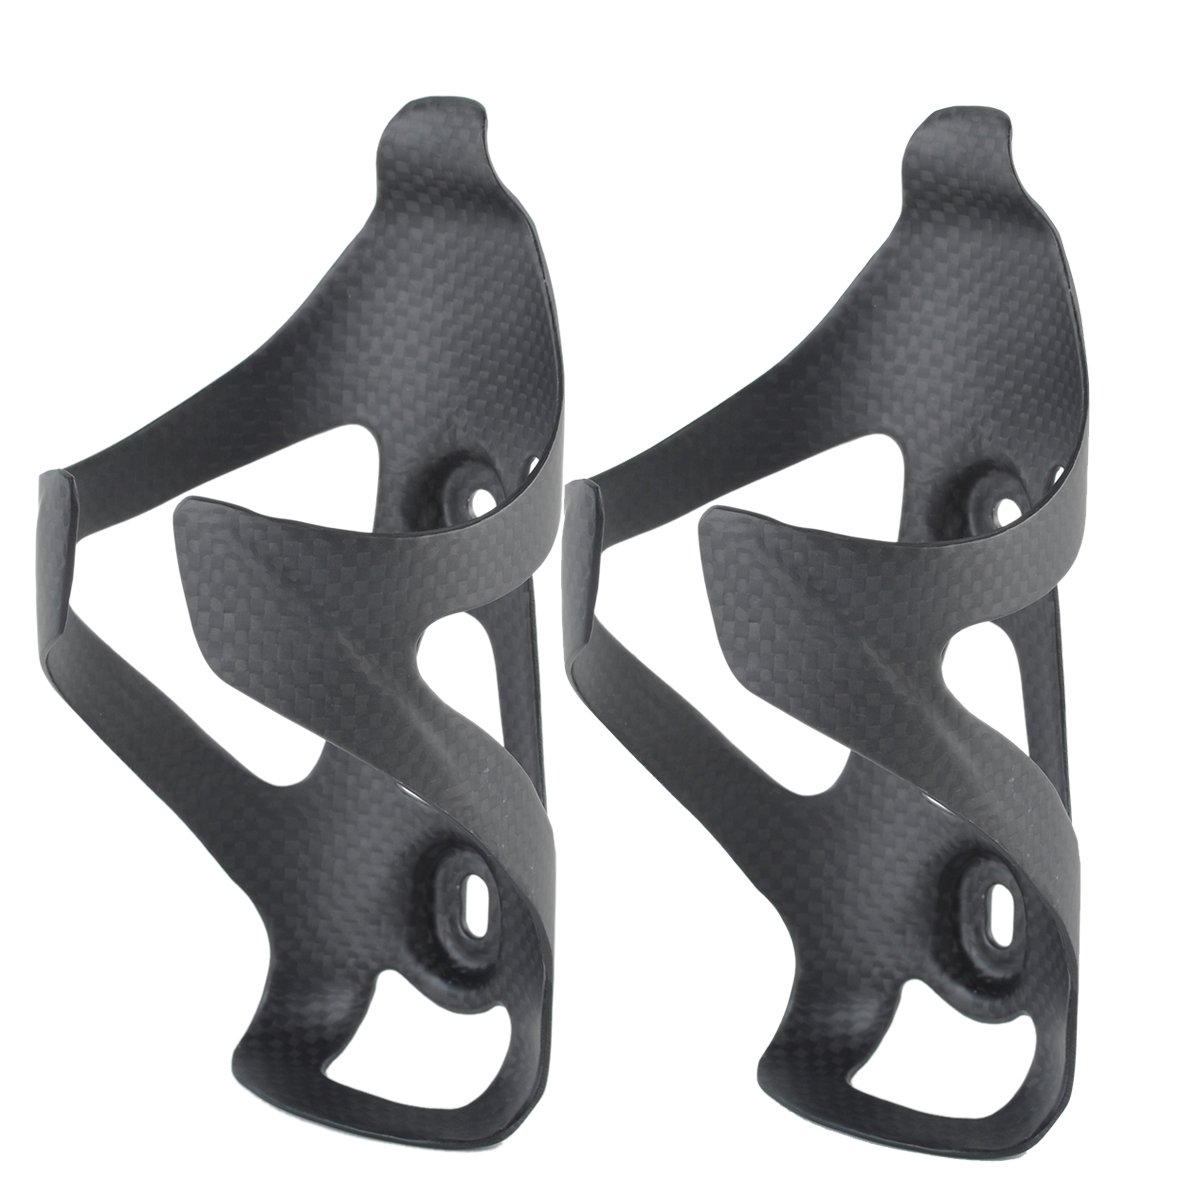 Anjoy Ultra Light Full Carbon Fiber Bicycle Bike Water Bottle Cage Holder for Road Bike MTB by Anjoy